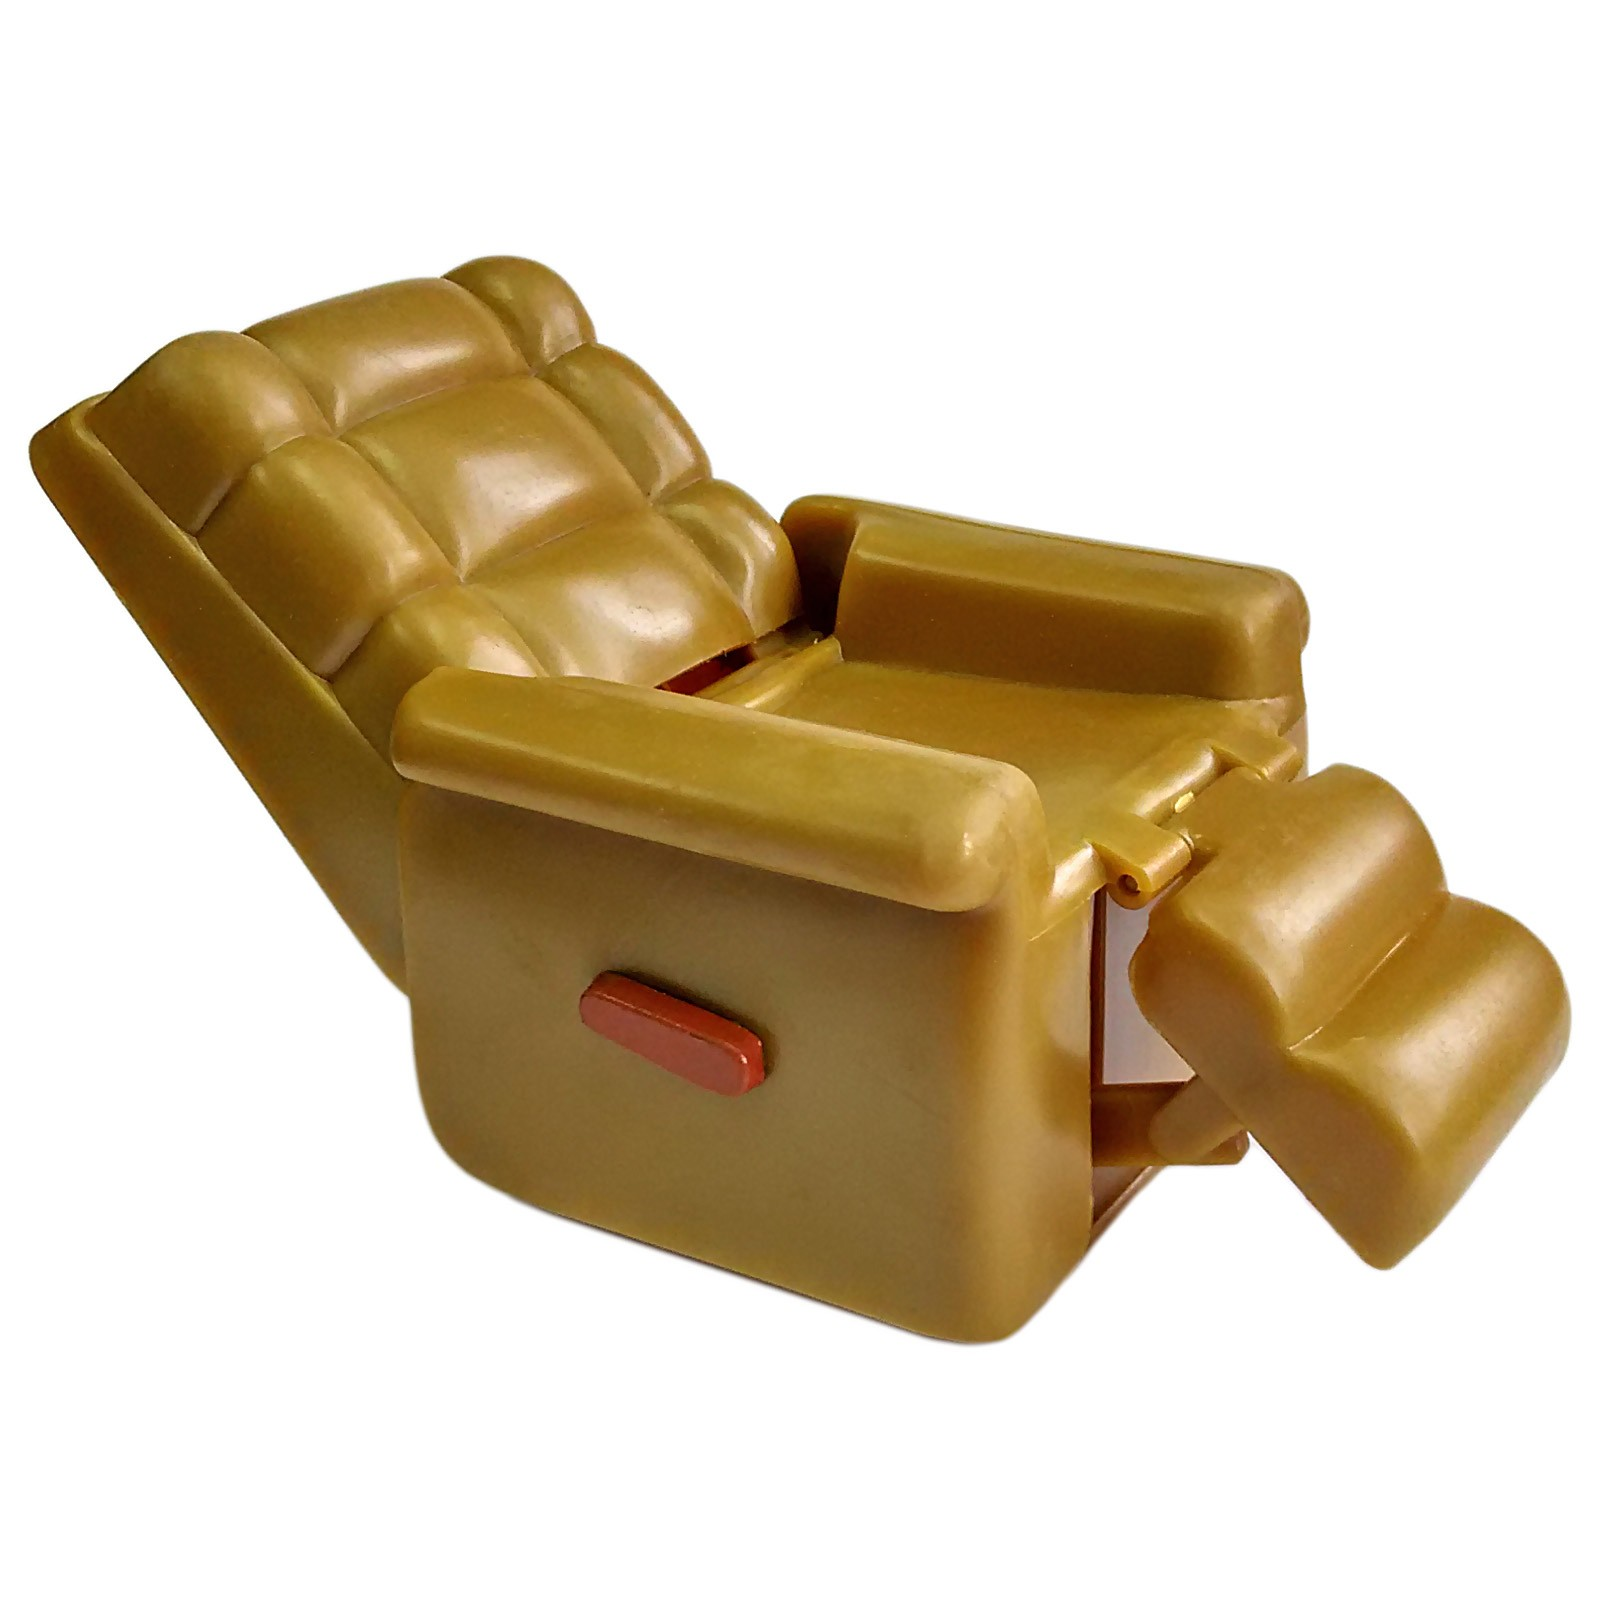 Amazing 1 12 Scale Dollhouse Furniture #19: Deluxe Recliner Mobility Sofa Chair 1/12 Scale Dollu0027s House Dollhouse  Furniture